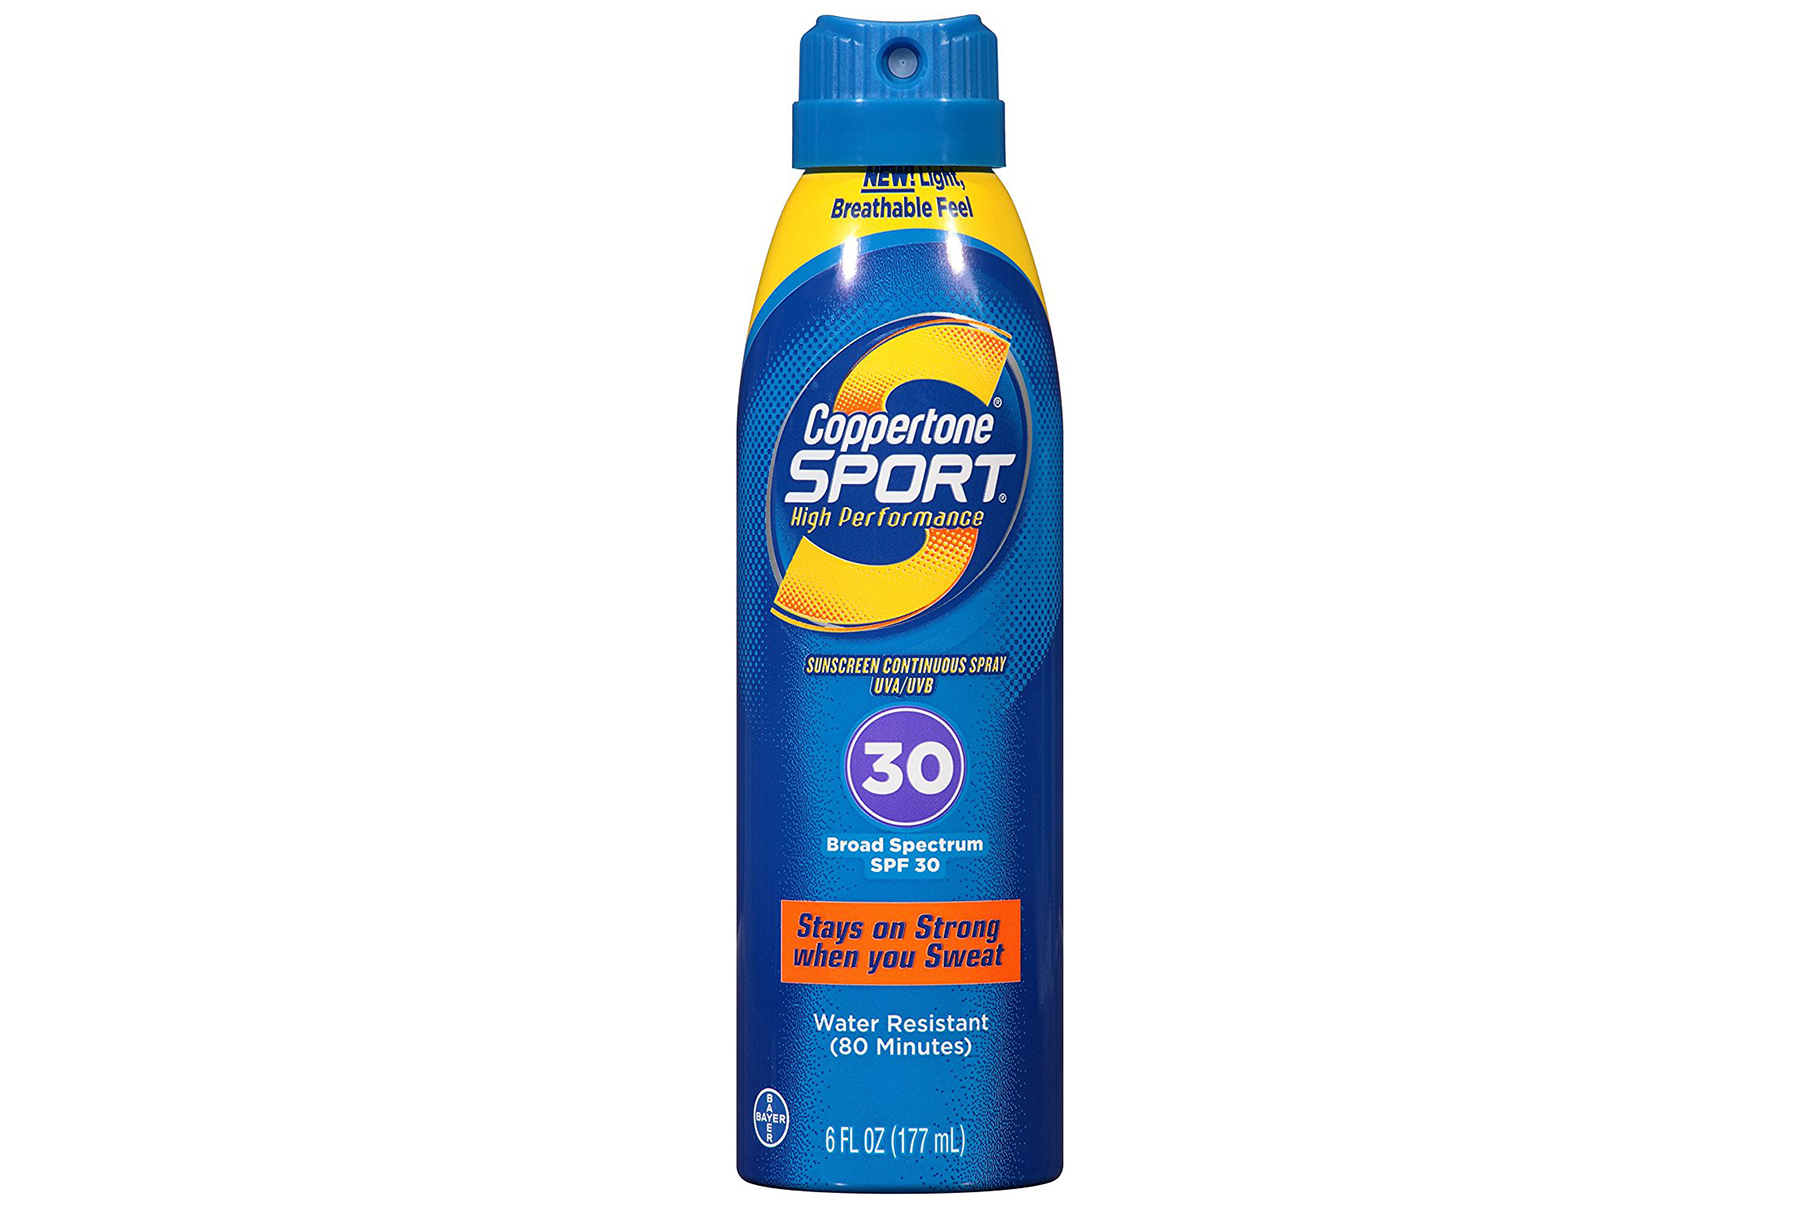 Coppertone Sport Continuous Spray Sunscreen SPF 30